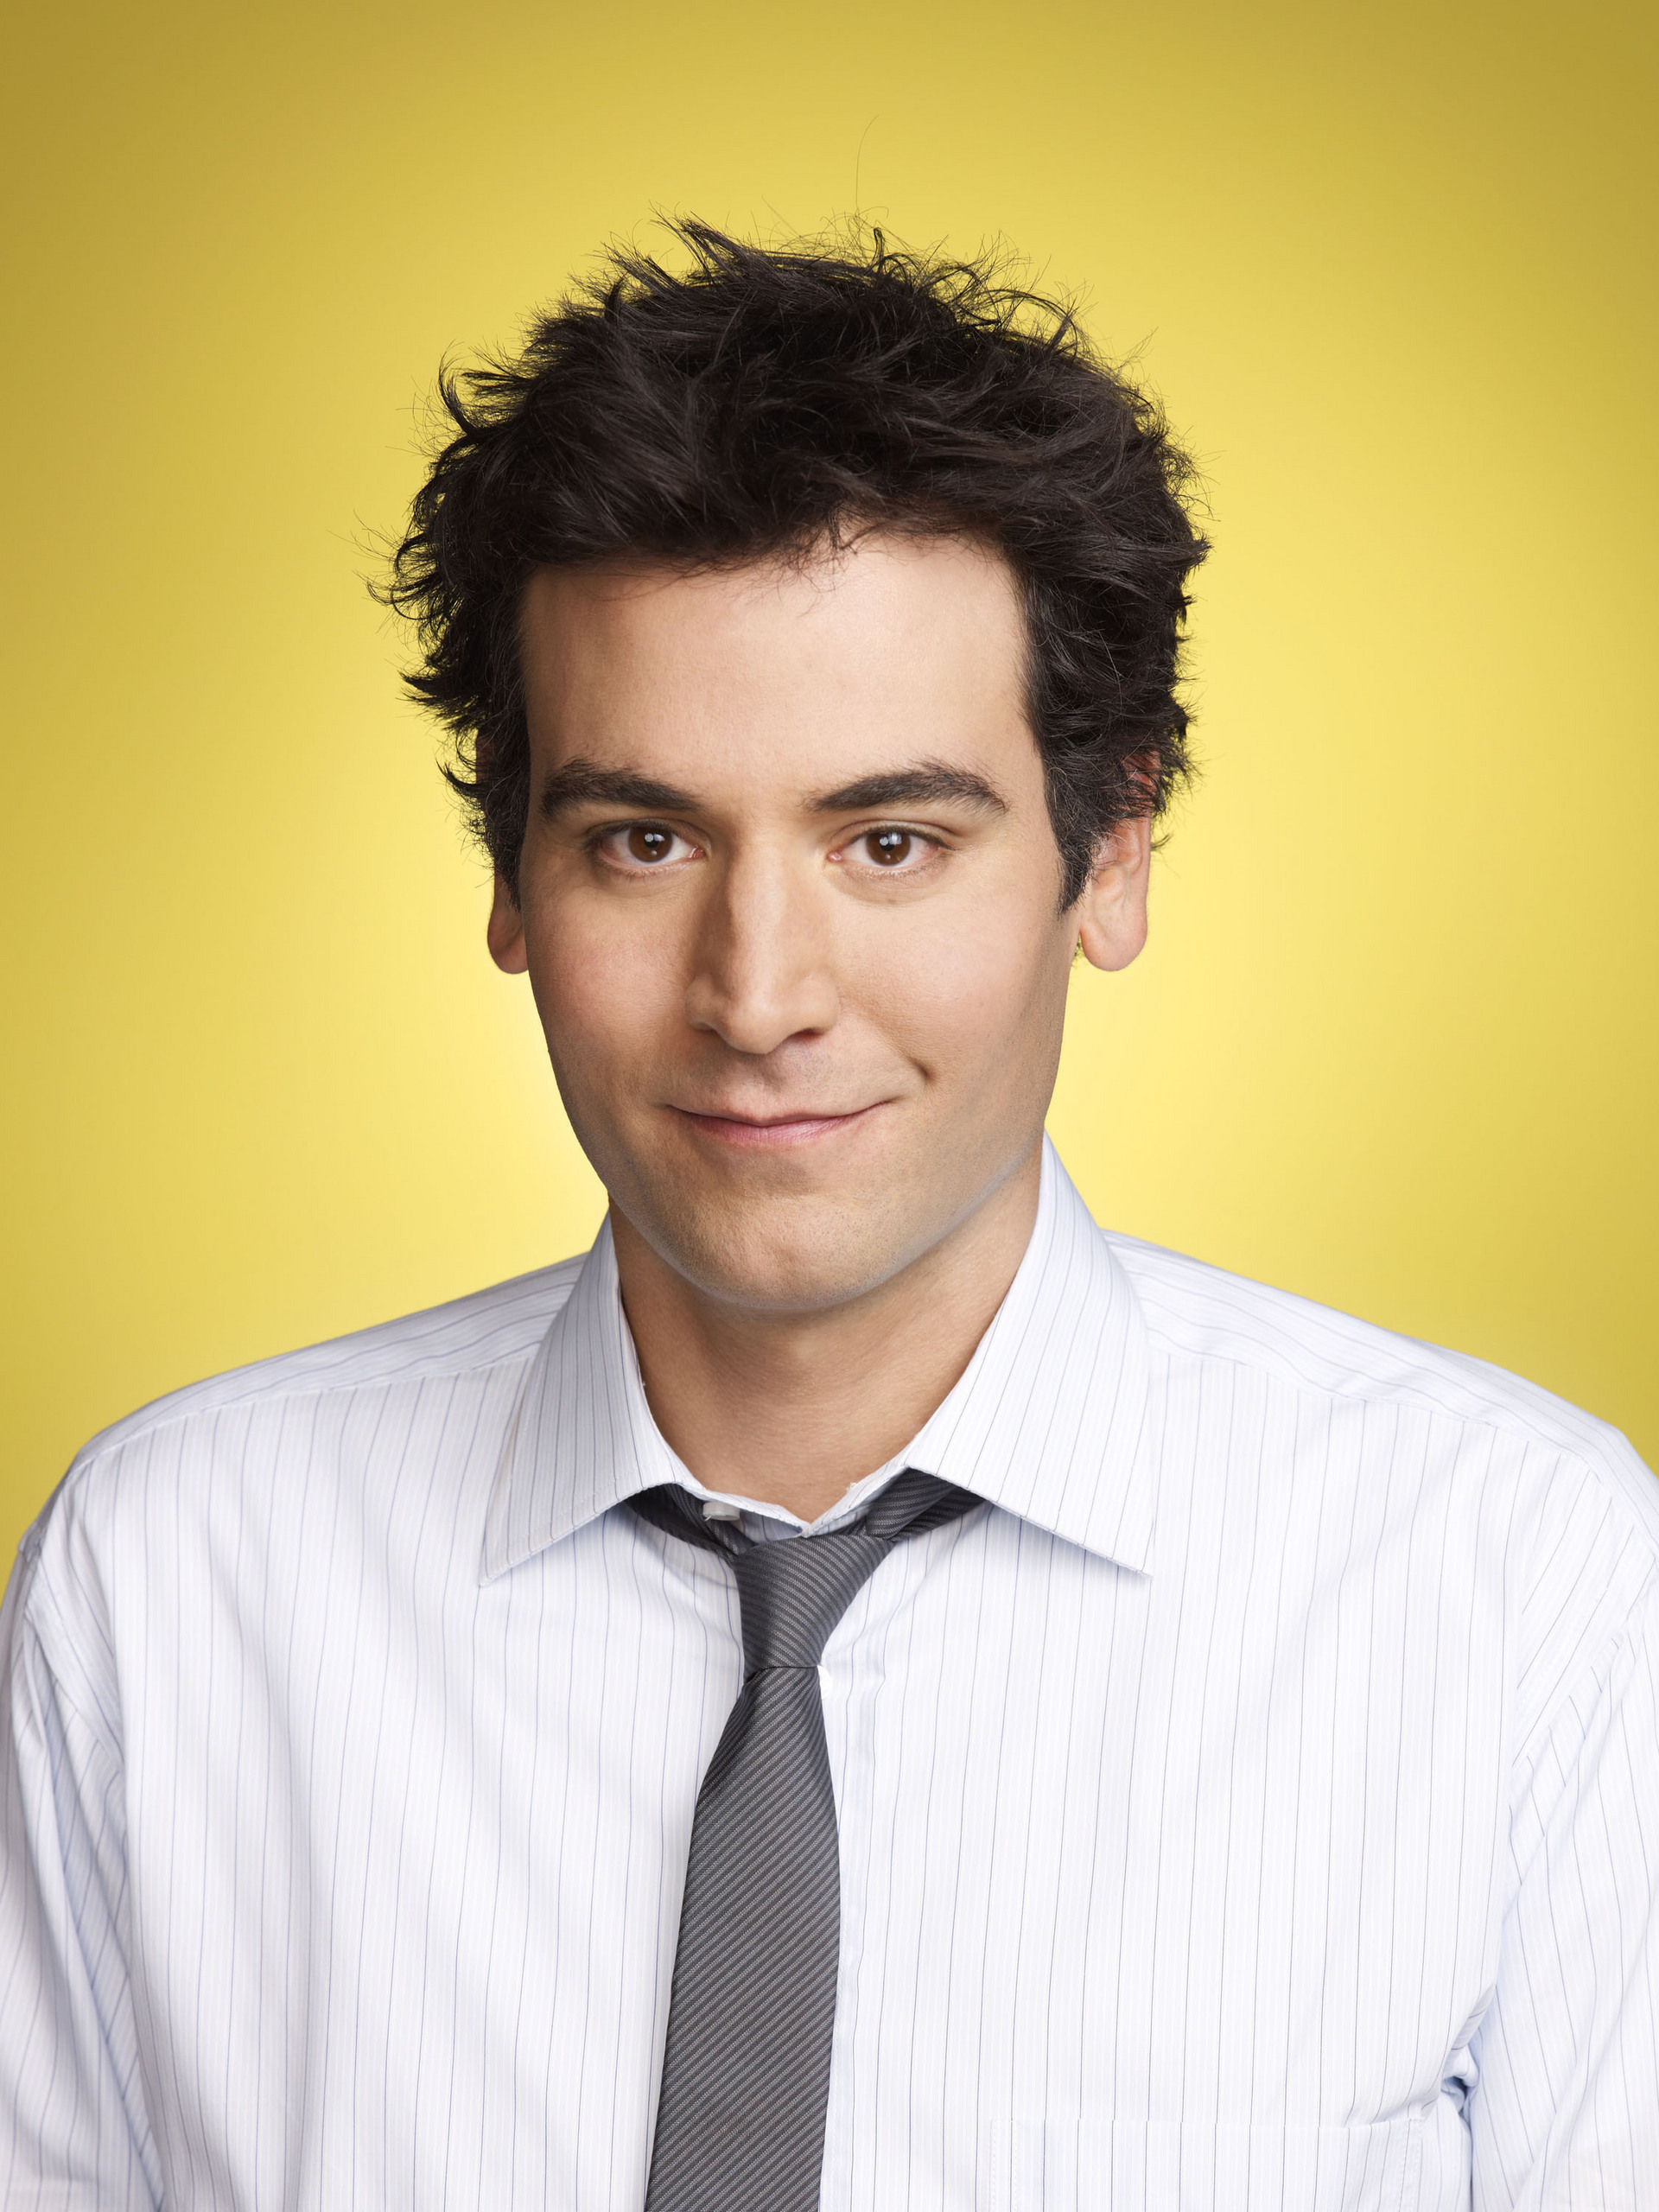 MBTI enneagram type of Ted Mosby